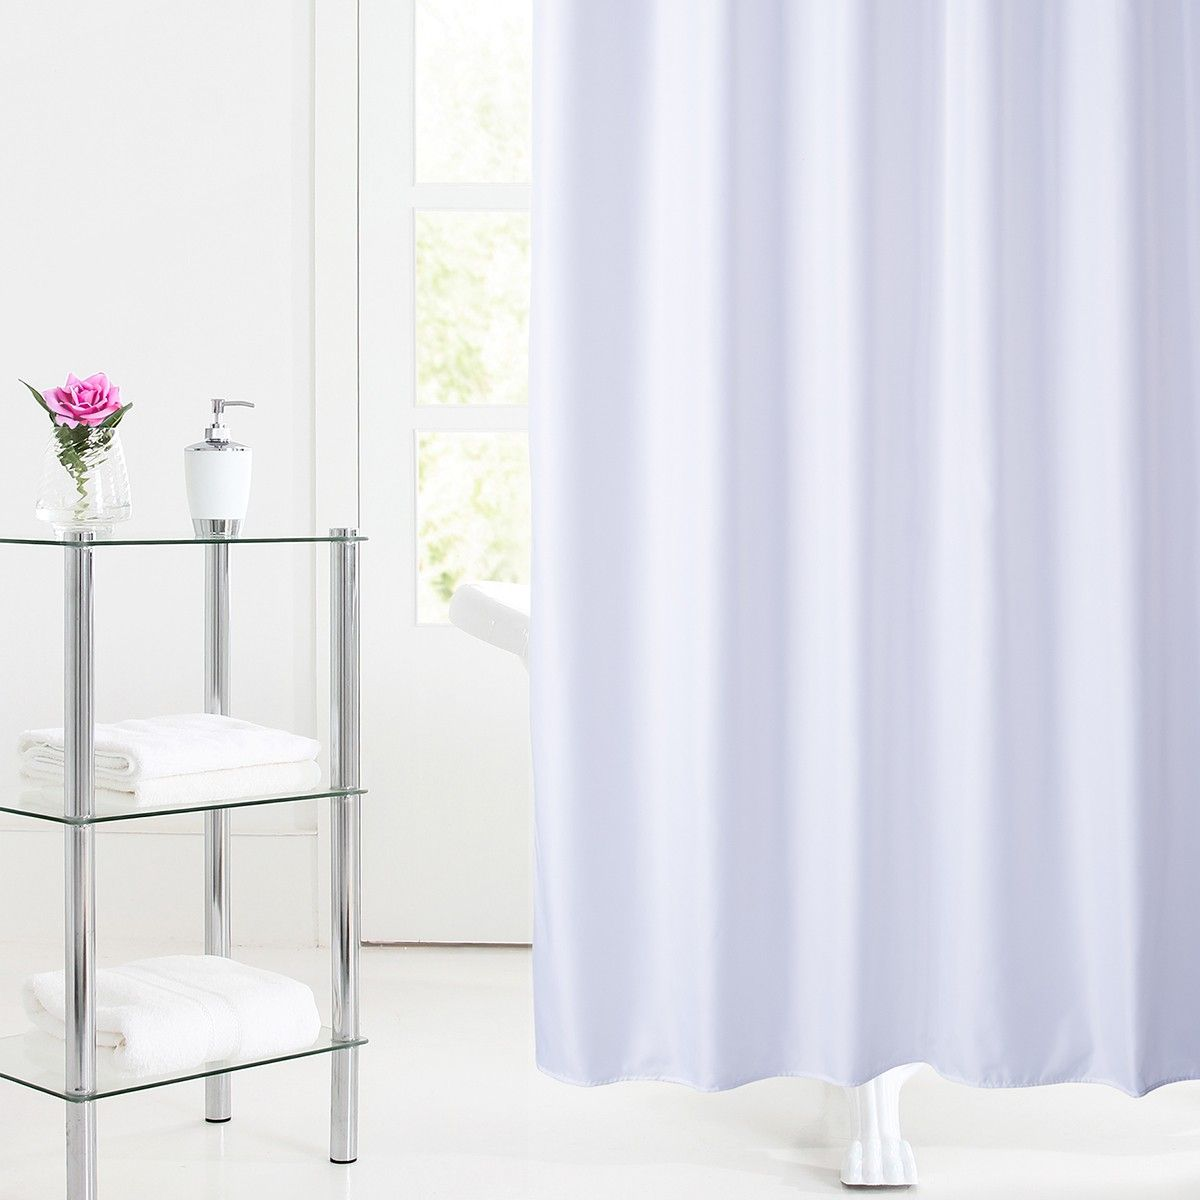 Dryna Shower Liner White Hookless Shower Curtain Curtains